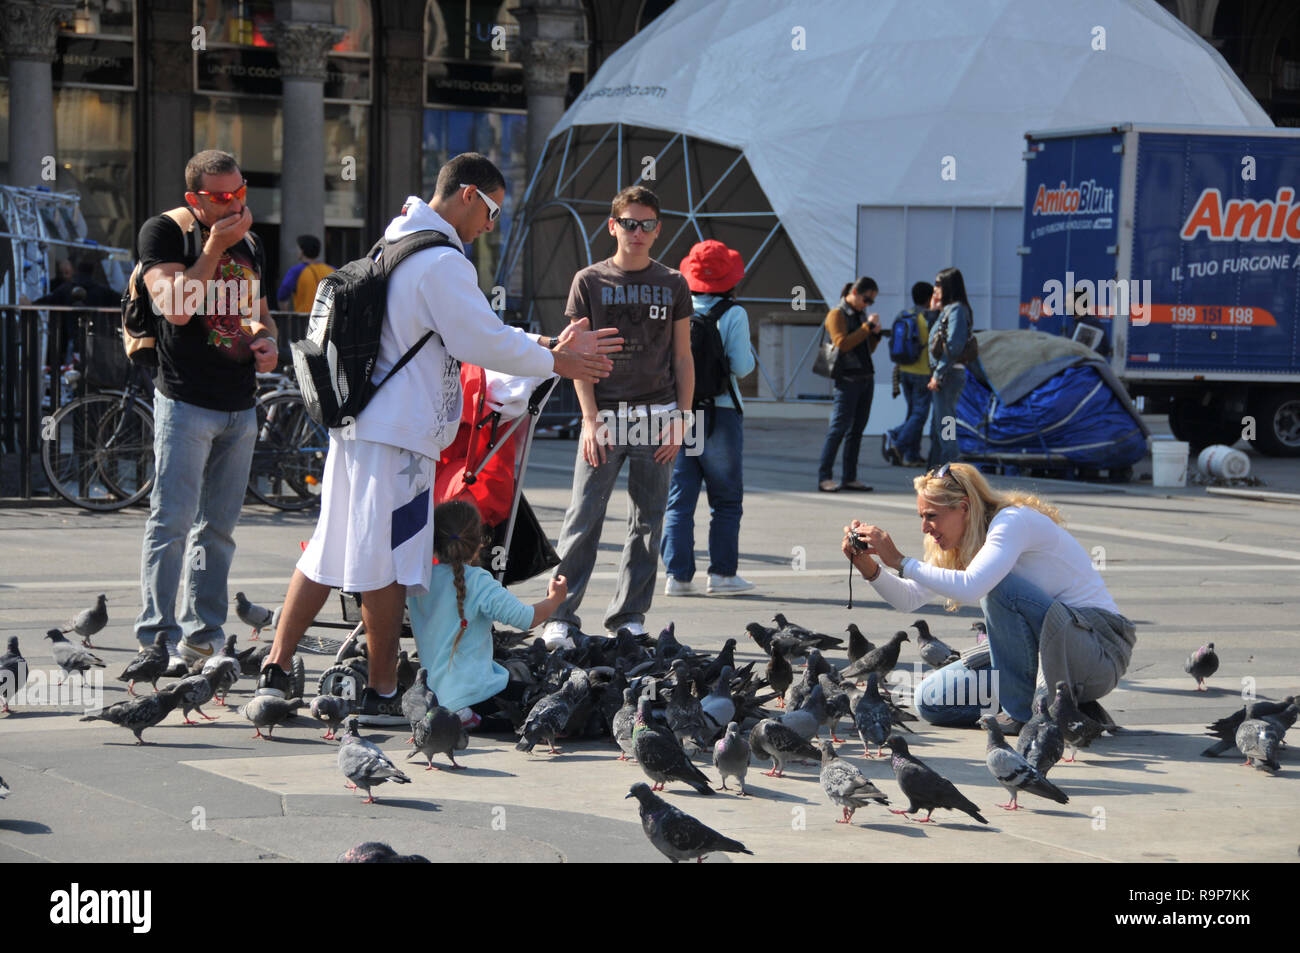 The Perfect Photo! - Piazza Duomo, Milan - Stock Image